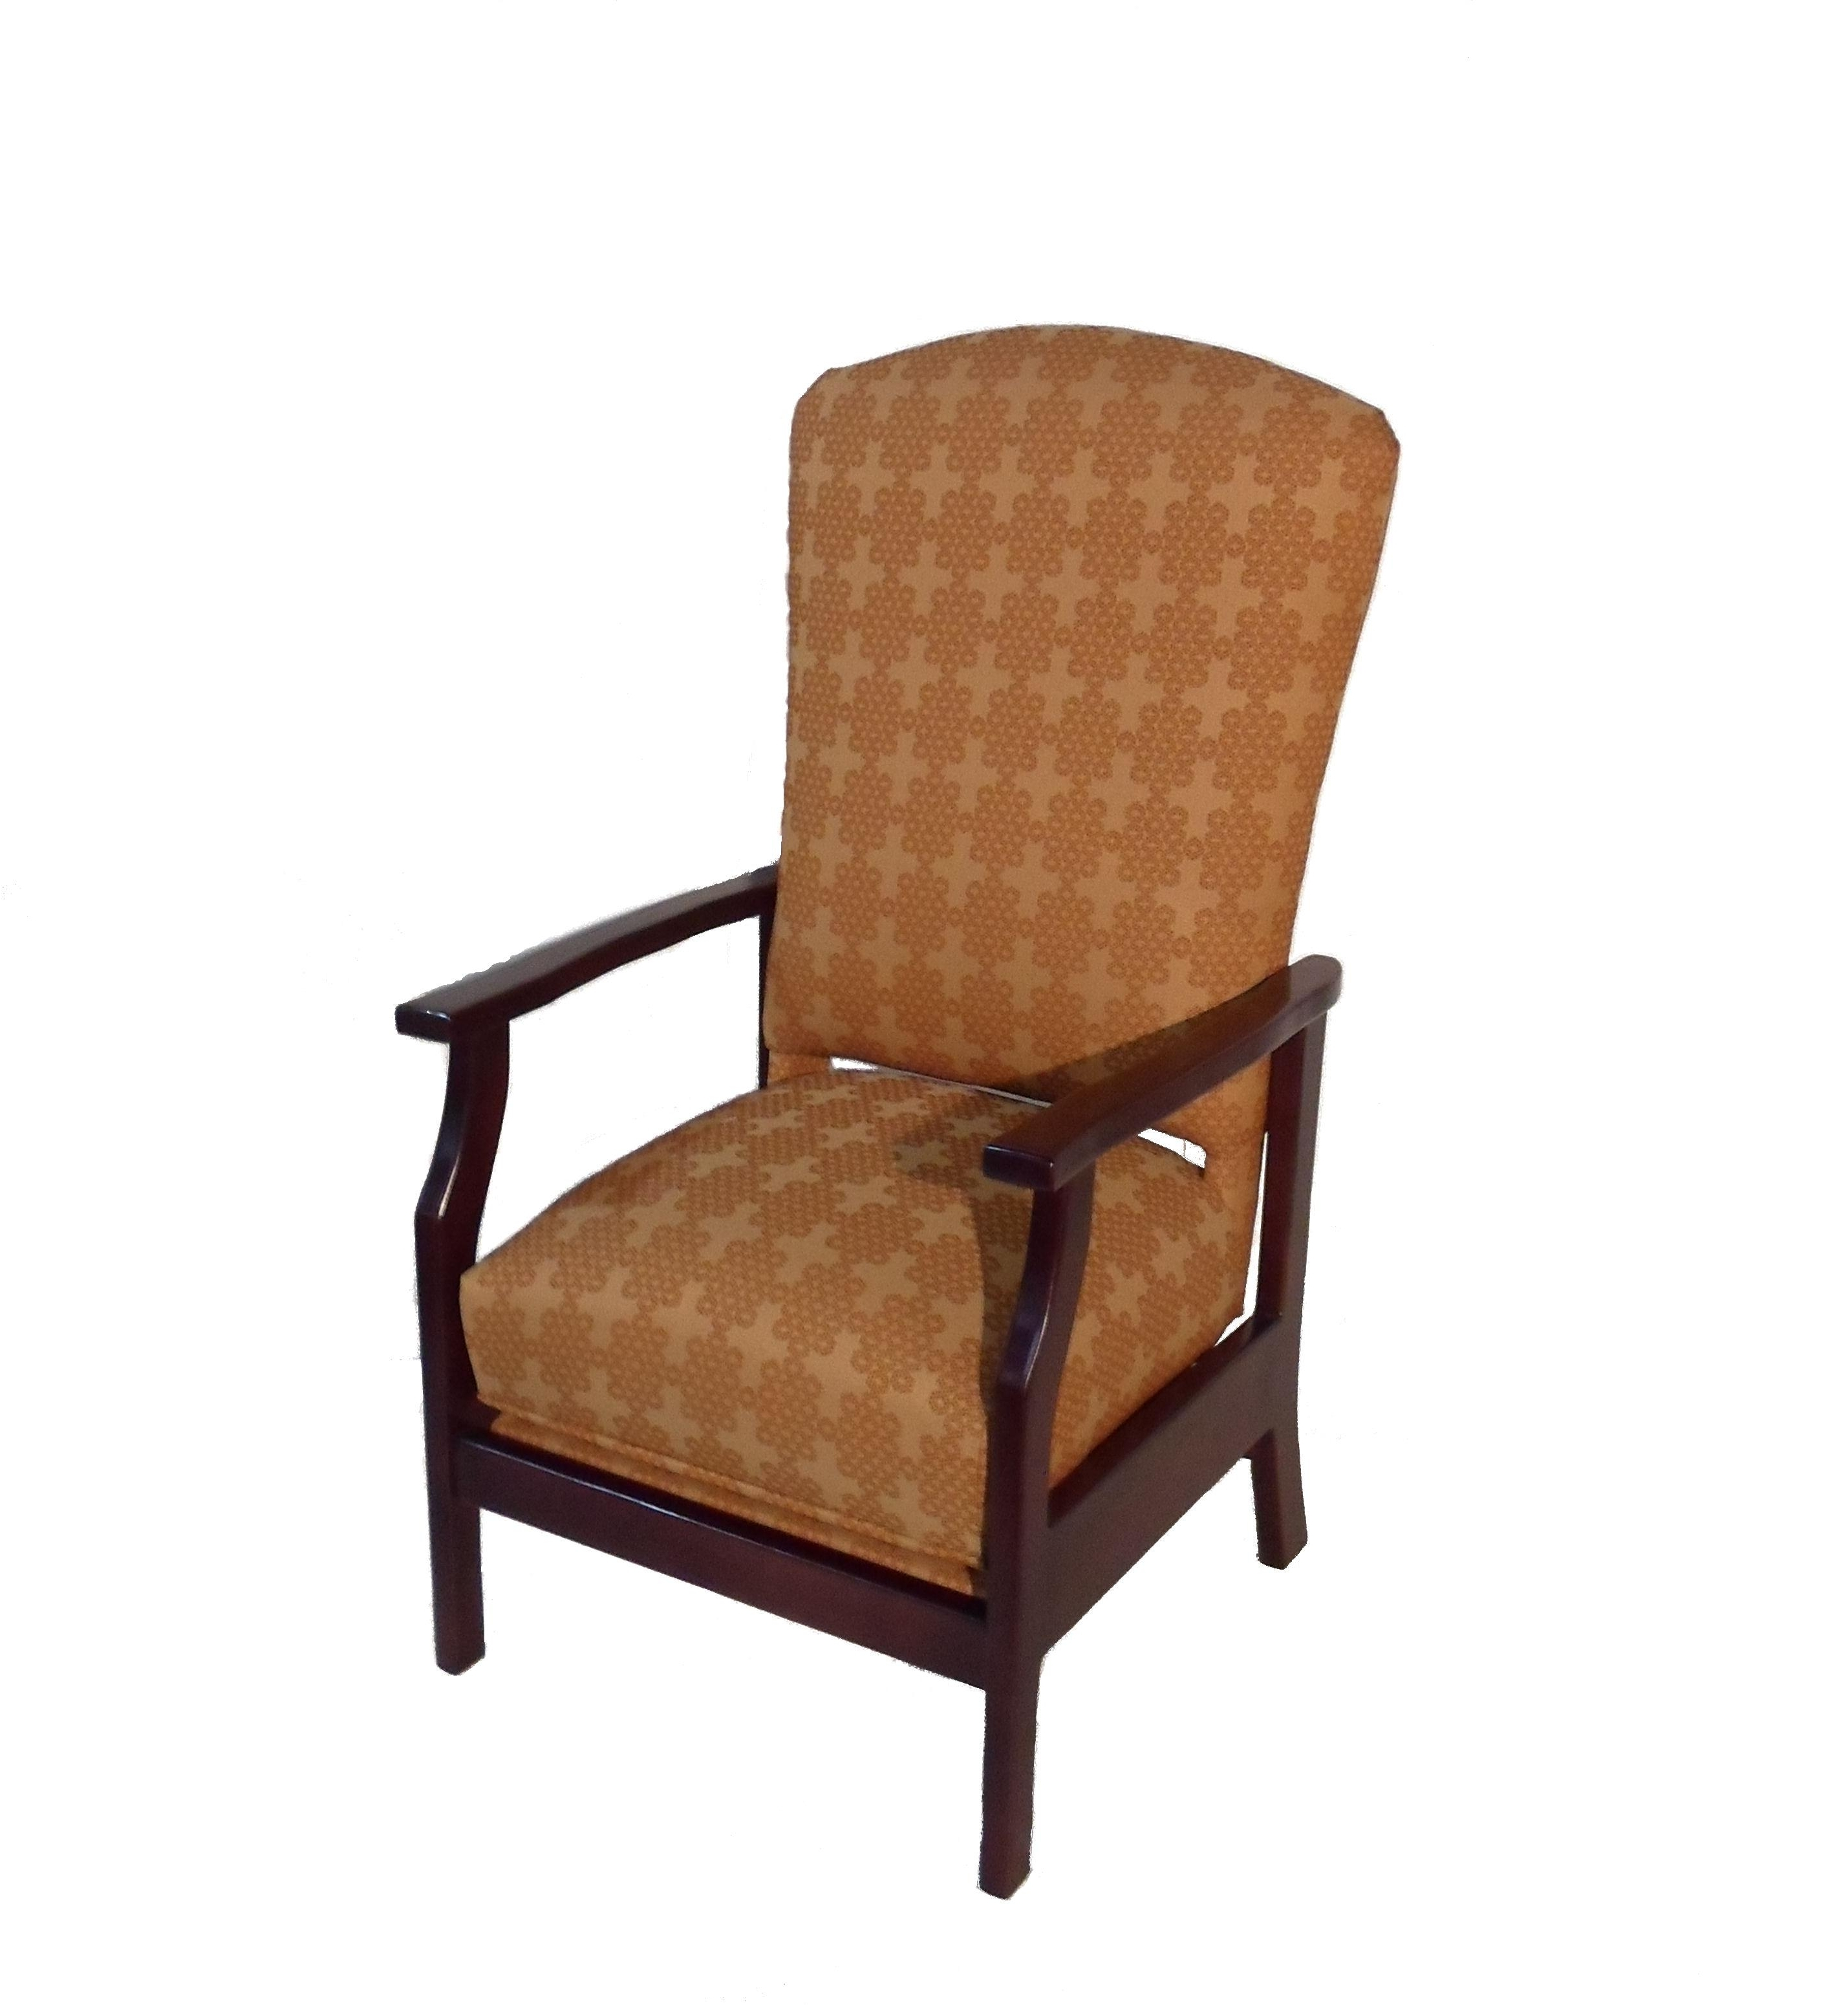 Stationary Rocking Chair With Lumbar Support – Twin Rivers Furnishings For Preferred Rocking Chairs With Lumbar Support (View 5 of 15)